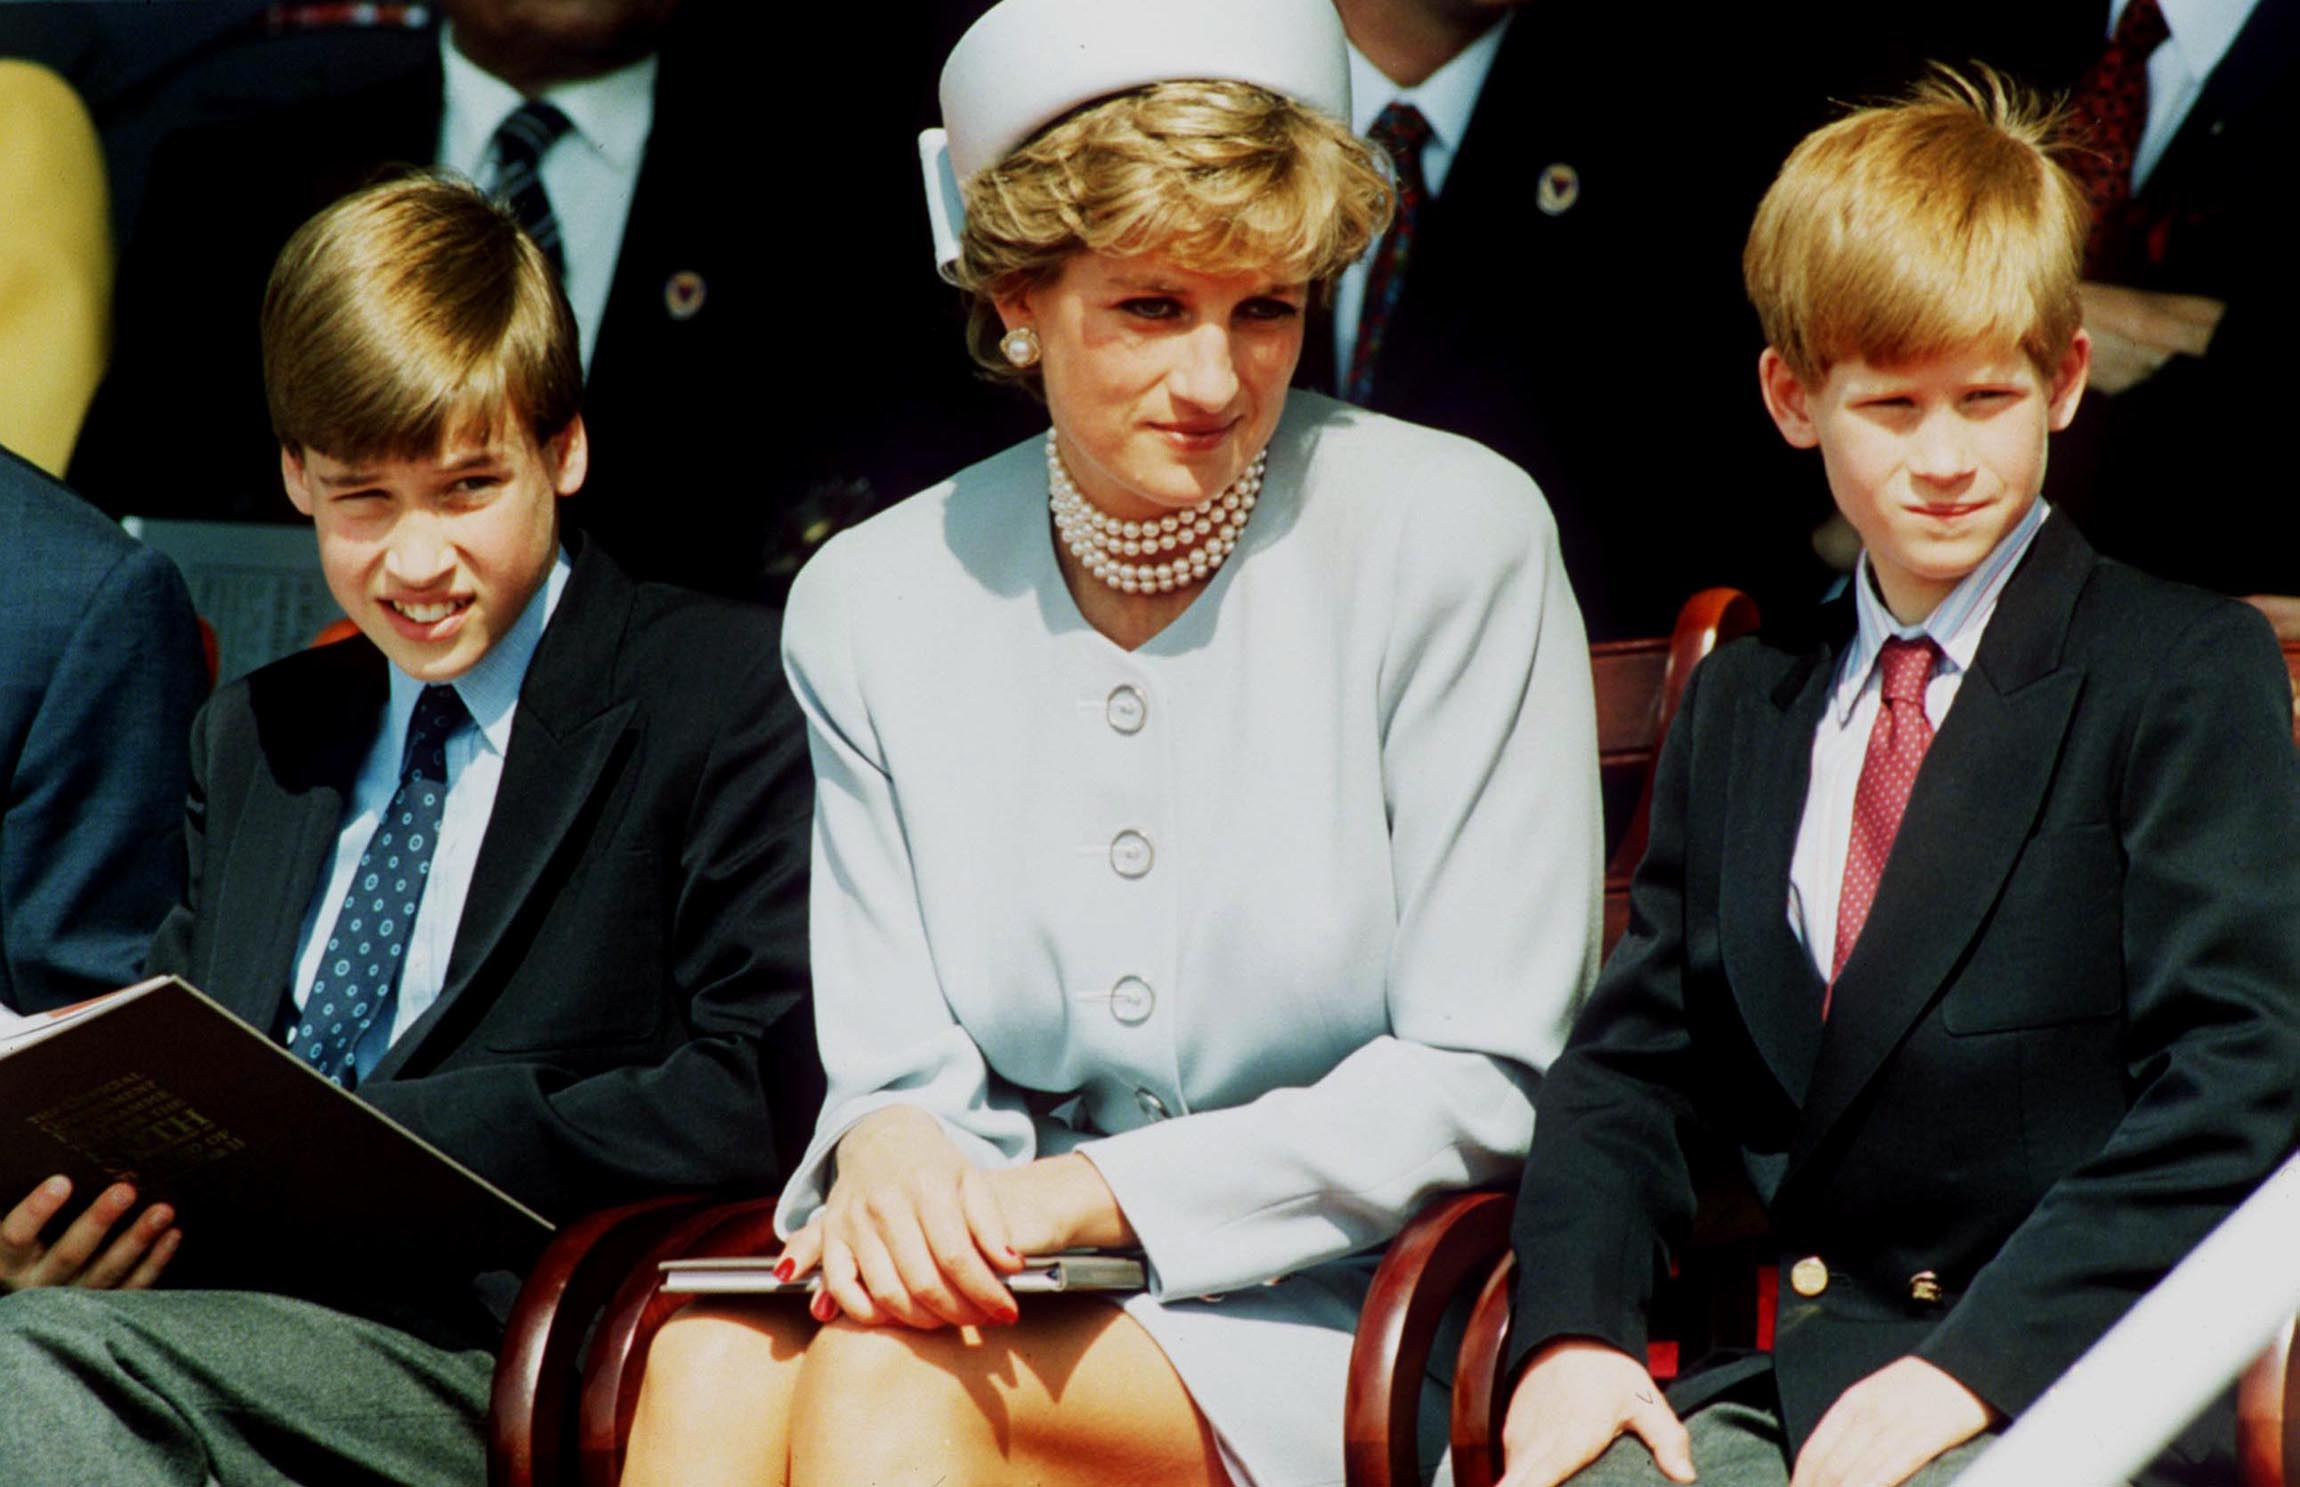 Princess Diana with her sons Prince William and Prince Harry attend the Heads of State VE Remembrance Service in Hyde Park on May 7, 1995, in London, England. | Source: Getty Images.